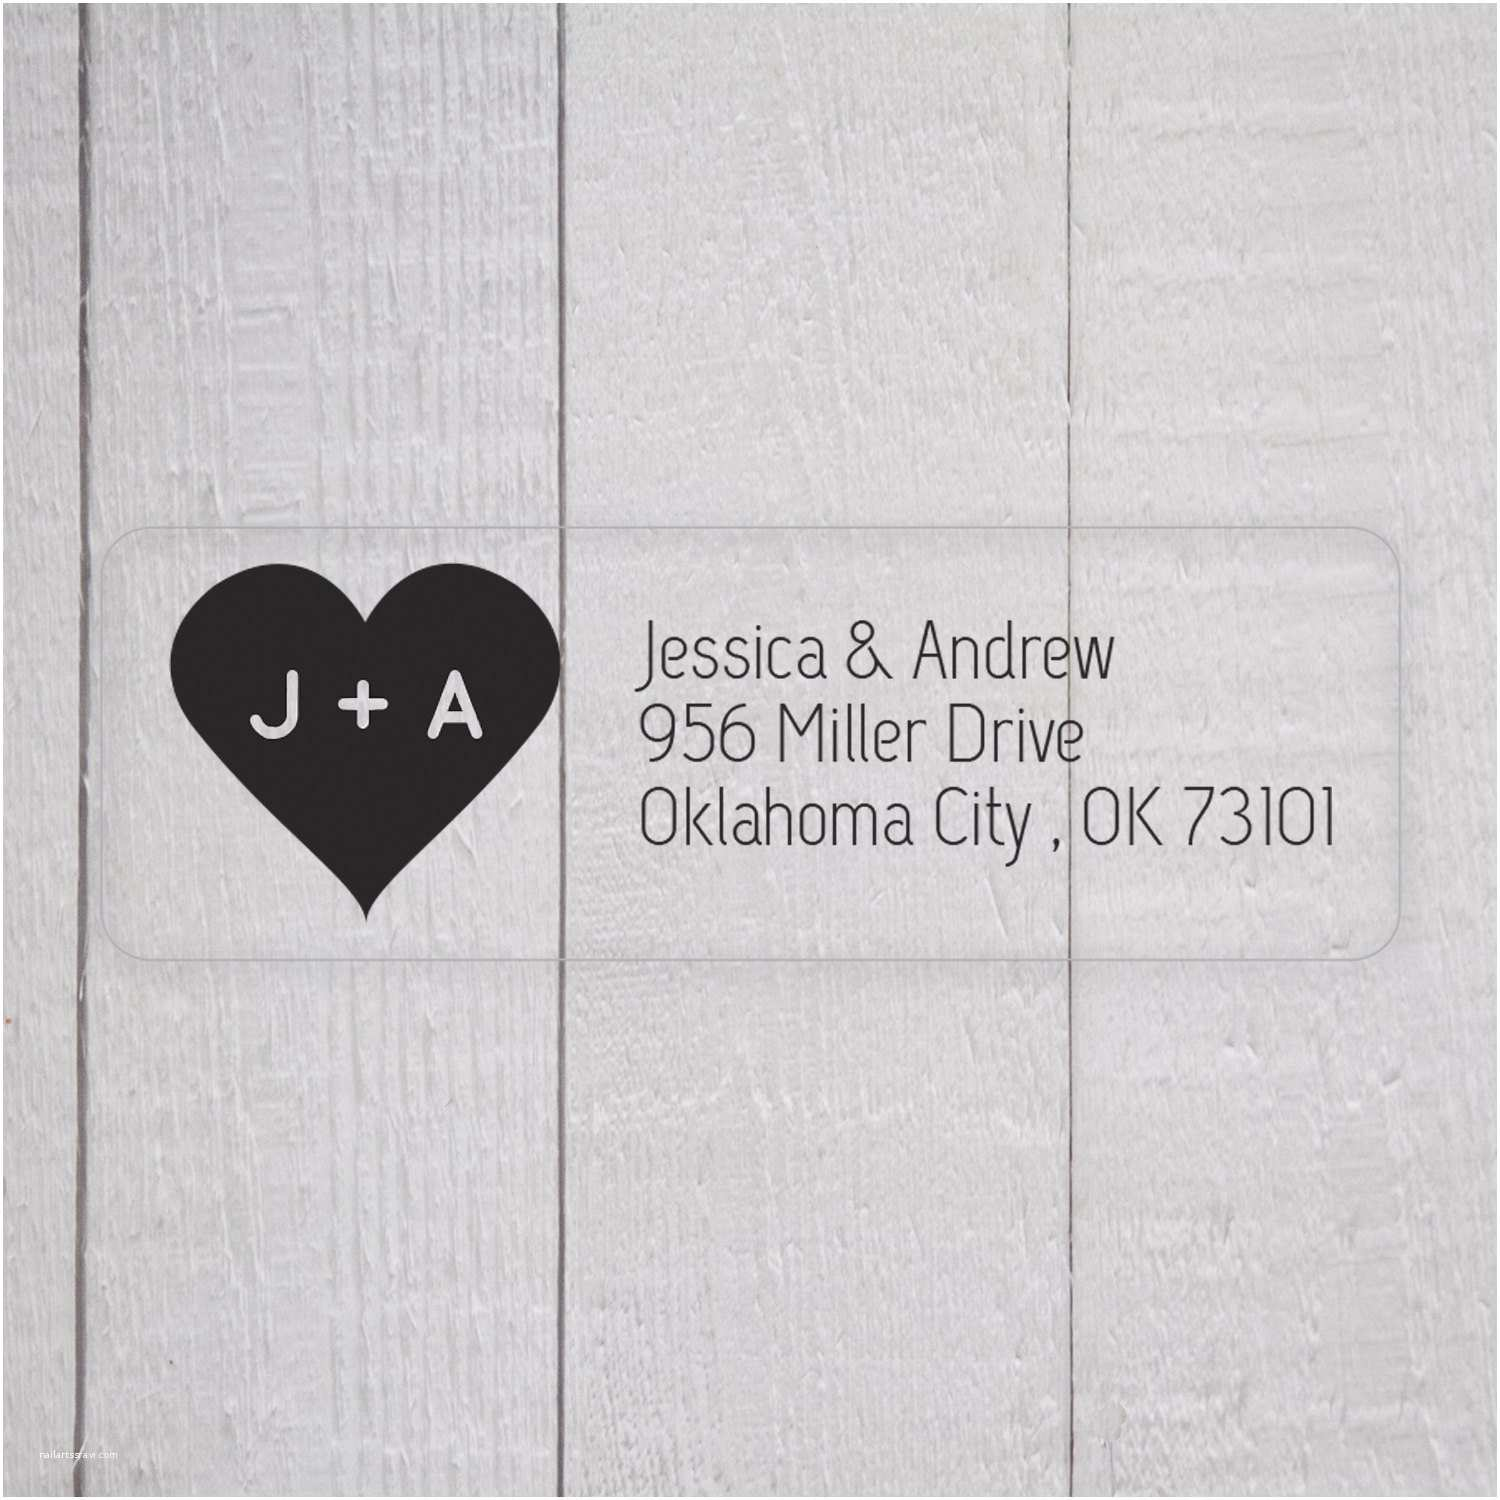 Return Labels for Wedding Invitations Wedding Invitation Return Address Labels Clear by